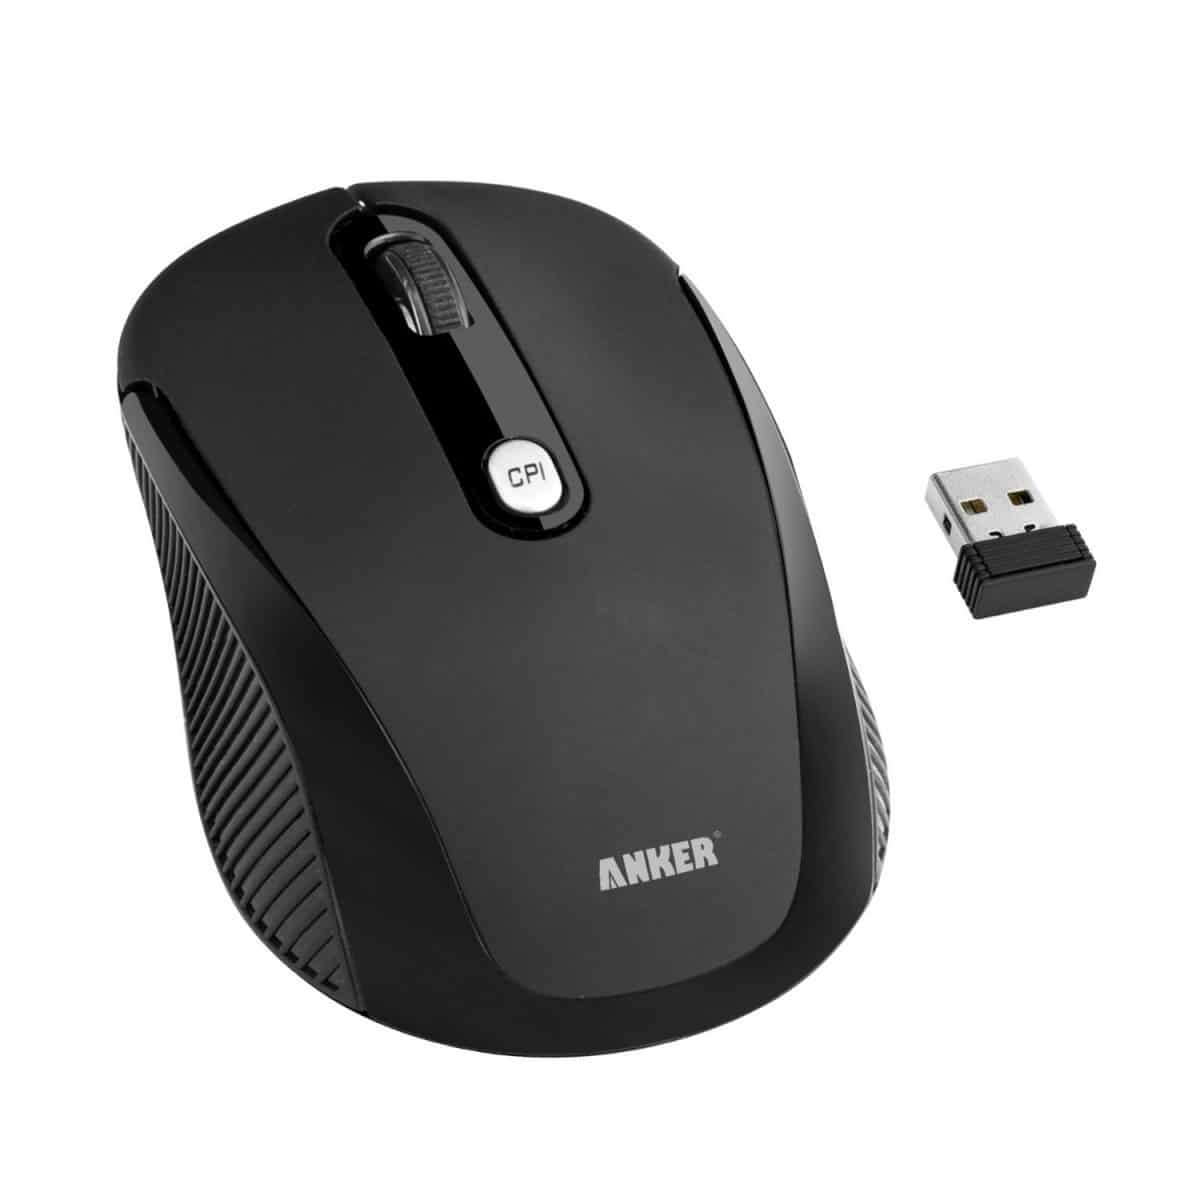 Hp wireless mouse x4000